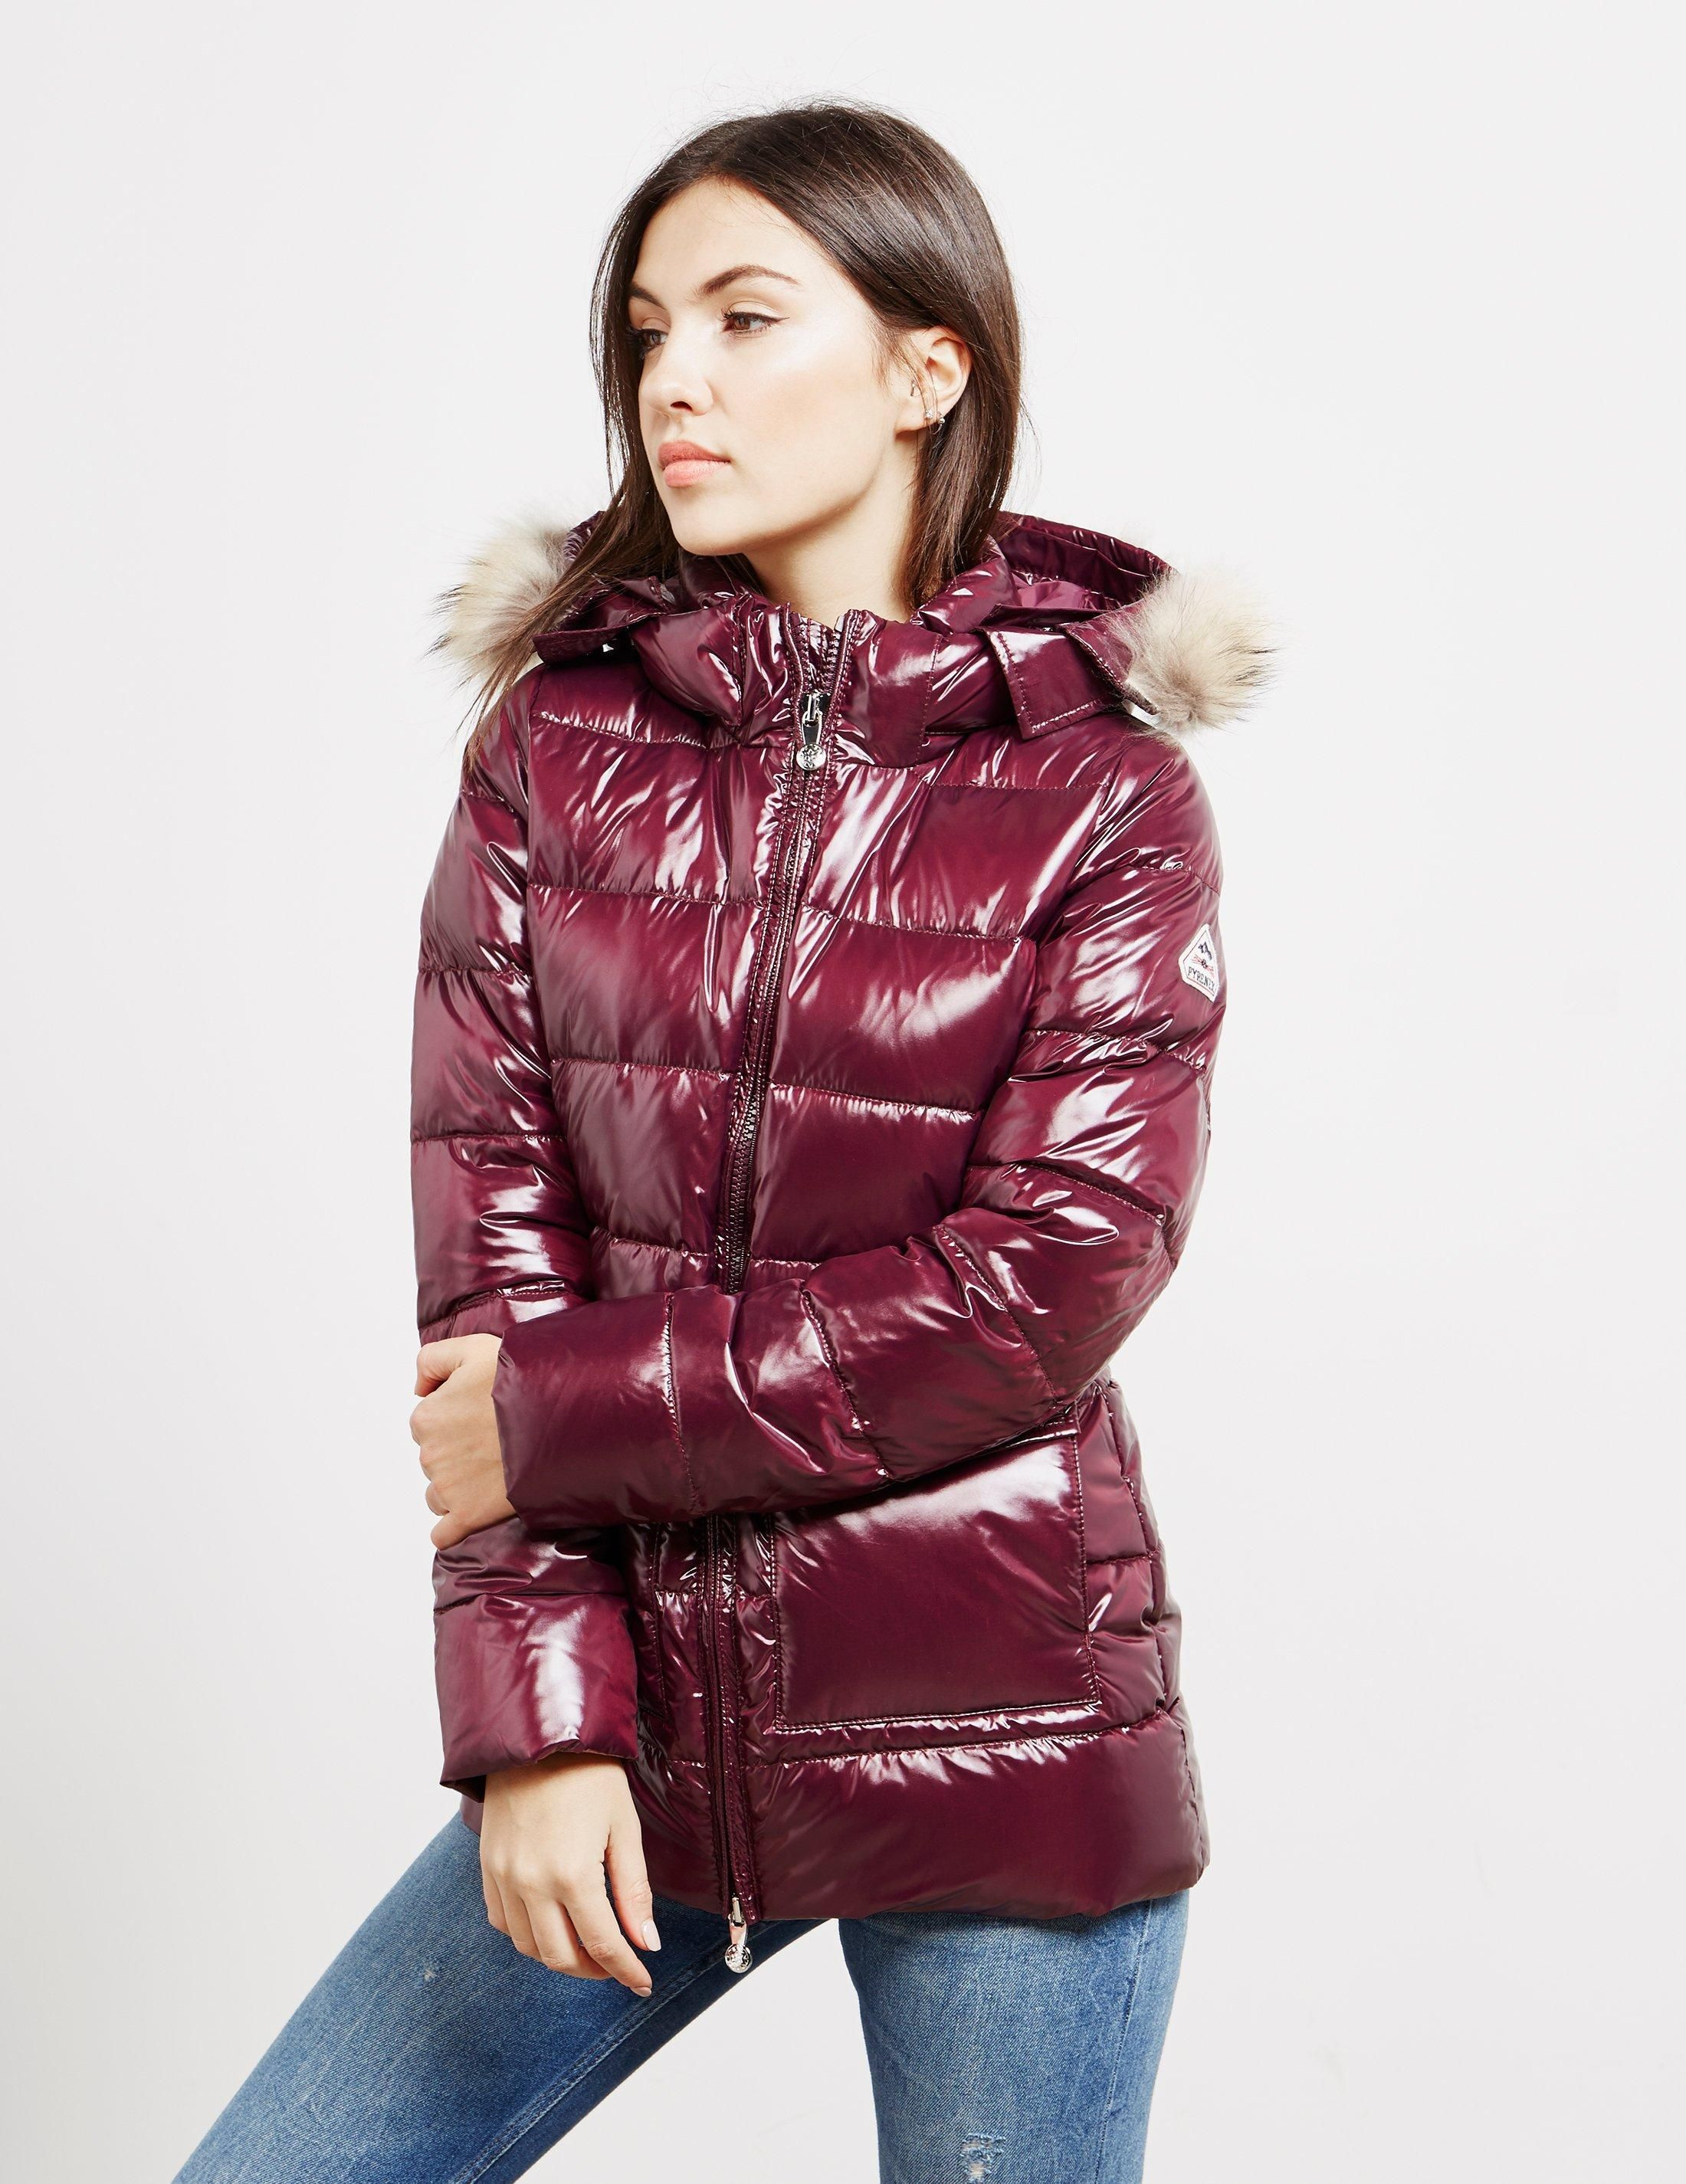 89555b3ded5 Lyst - Pyrenex Womens Authentic Shiny Jacket Red in Red | || Winter ...